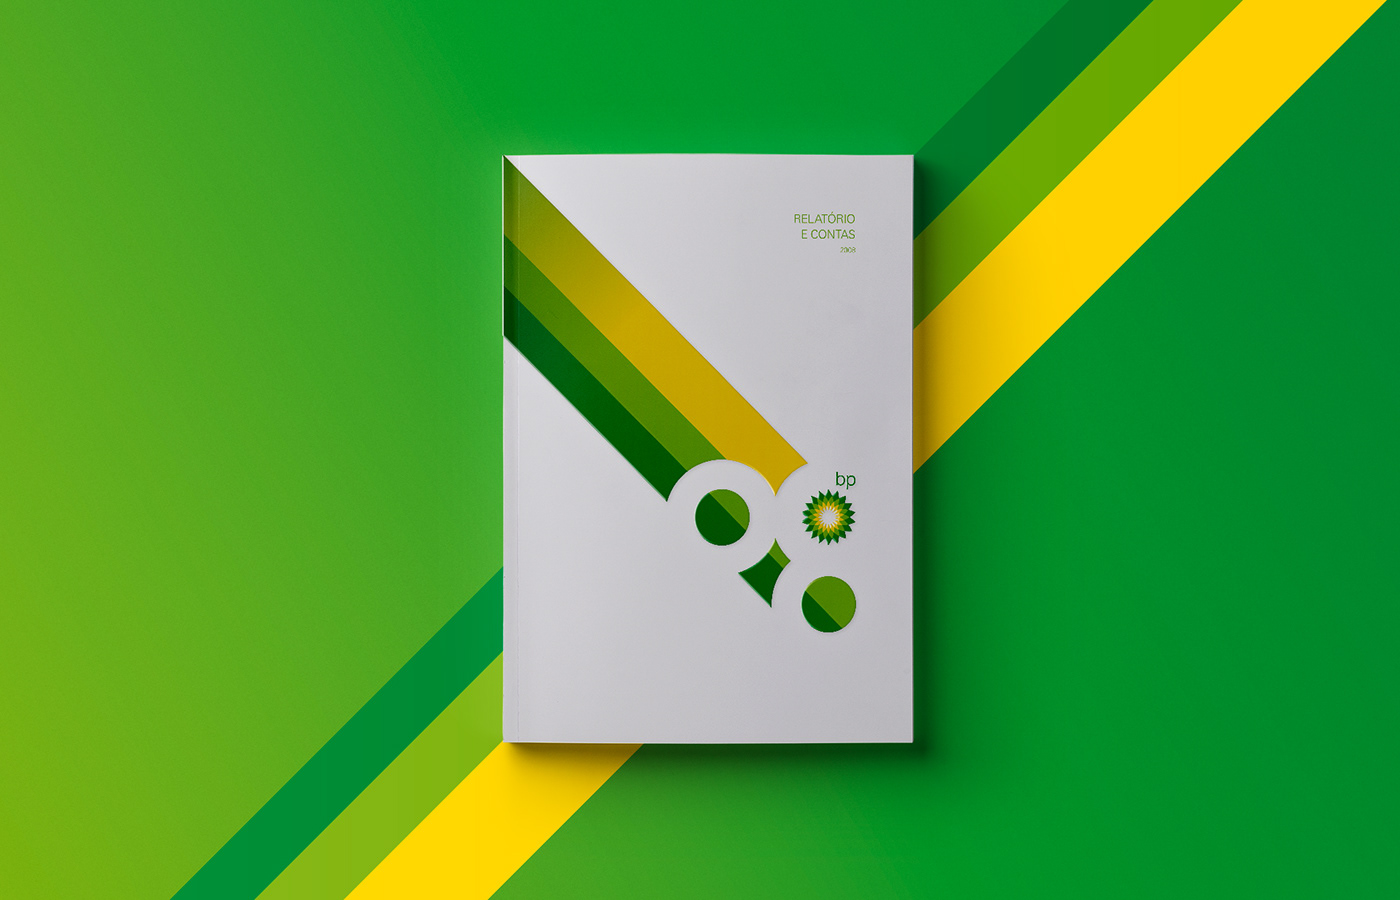 BP - annual report 2008